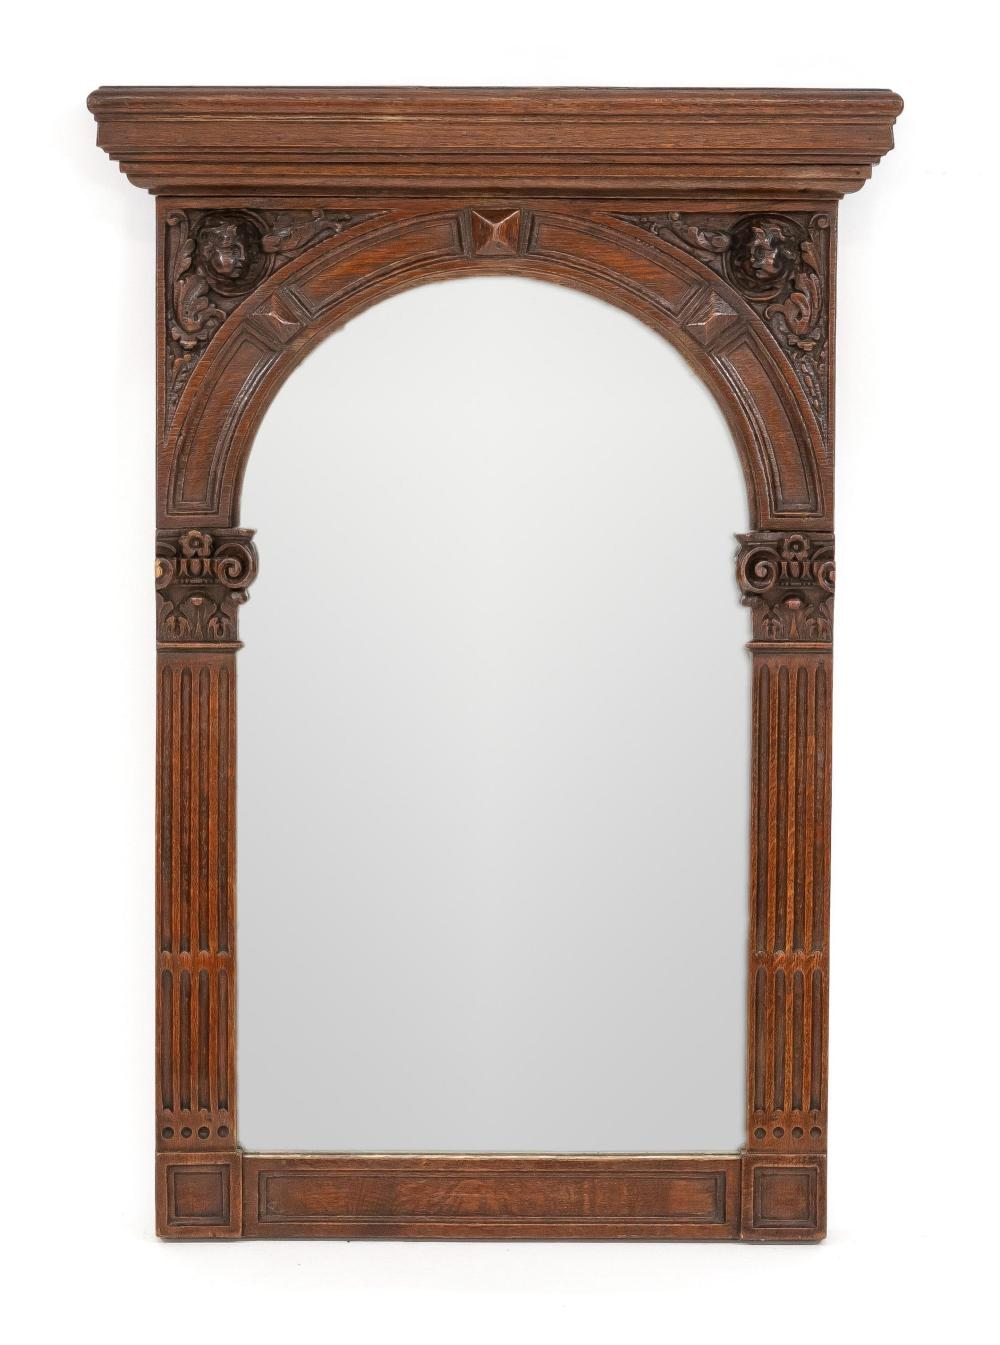 Historism wall mirror, end of